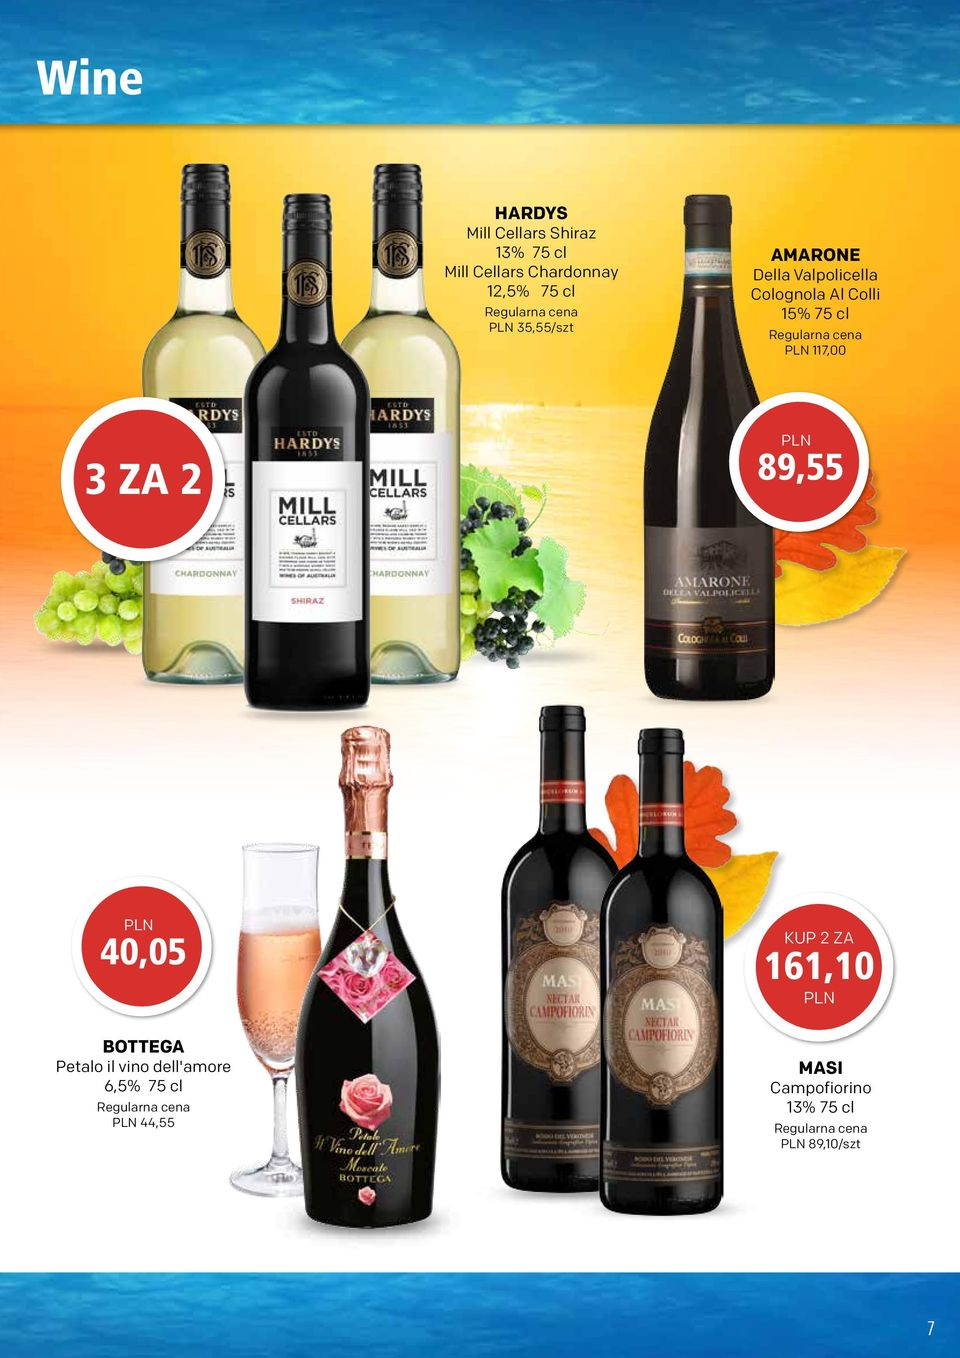 Colli 15% 75 cl 117,00 3 ZA 2 89,55 40,05 161,10 BOTTEGA Petalo il